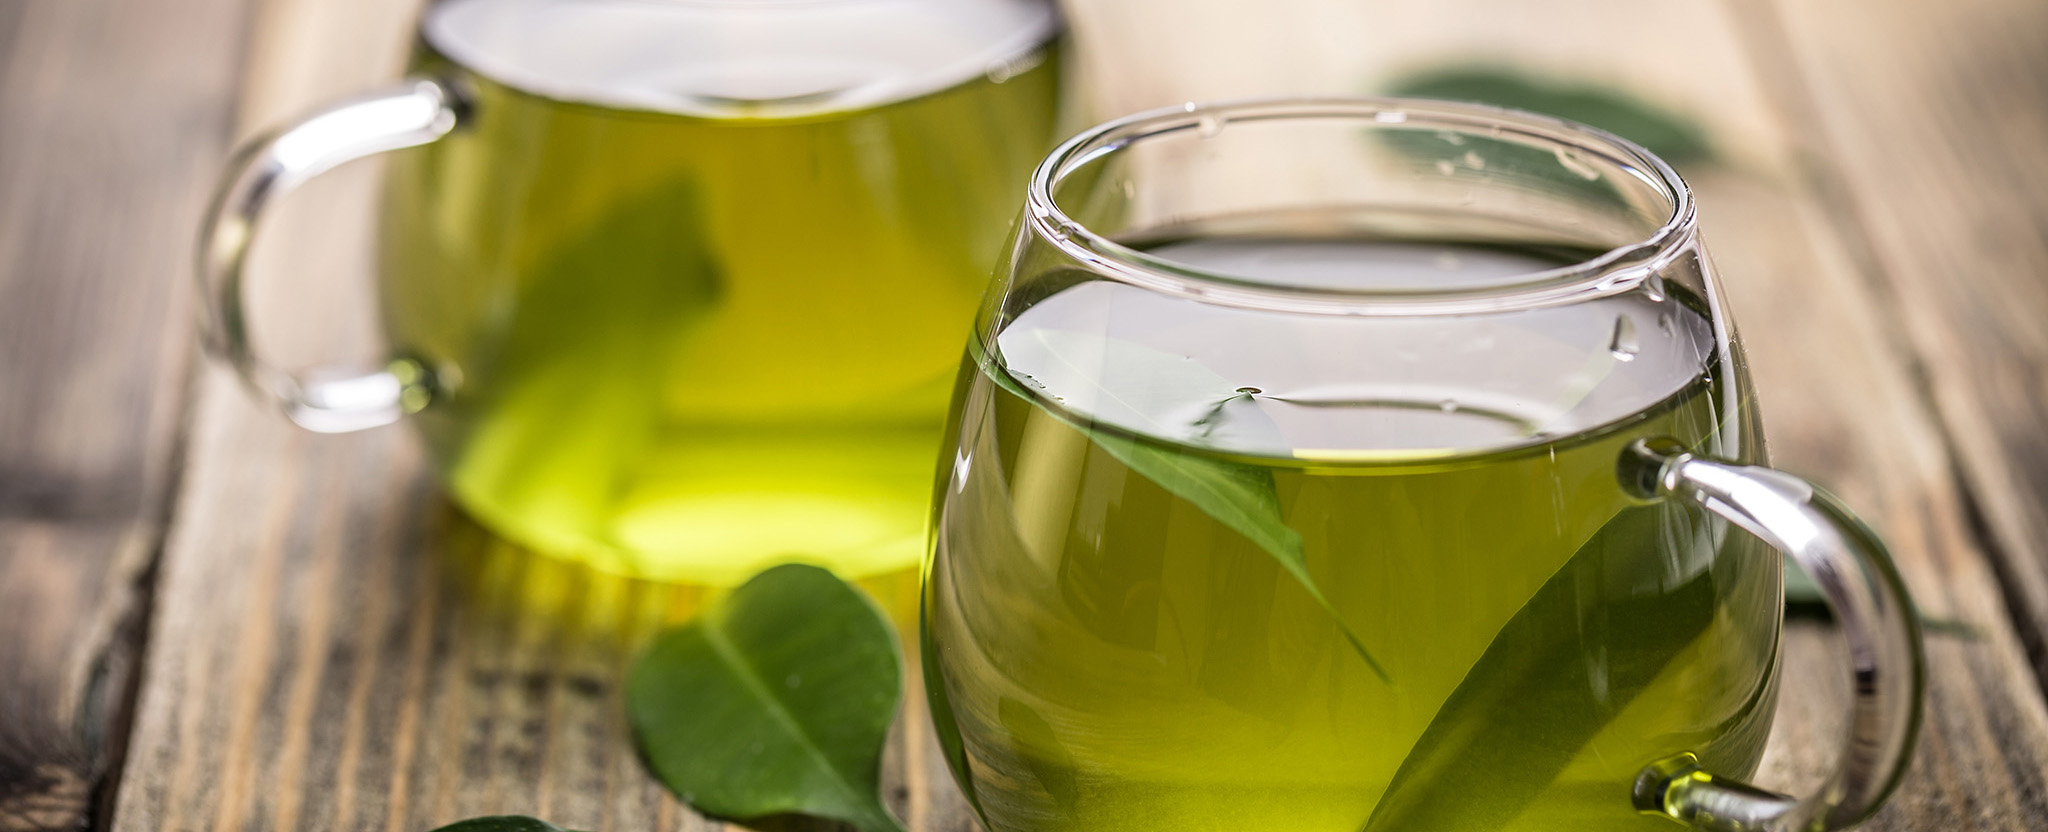 featured-learn_to_brew_green_tea_v2-795752.jpg